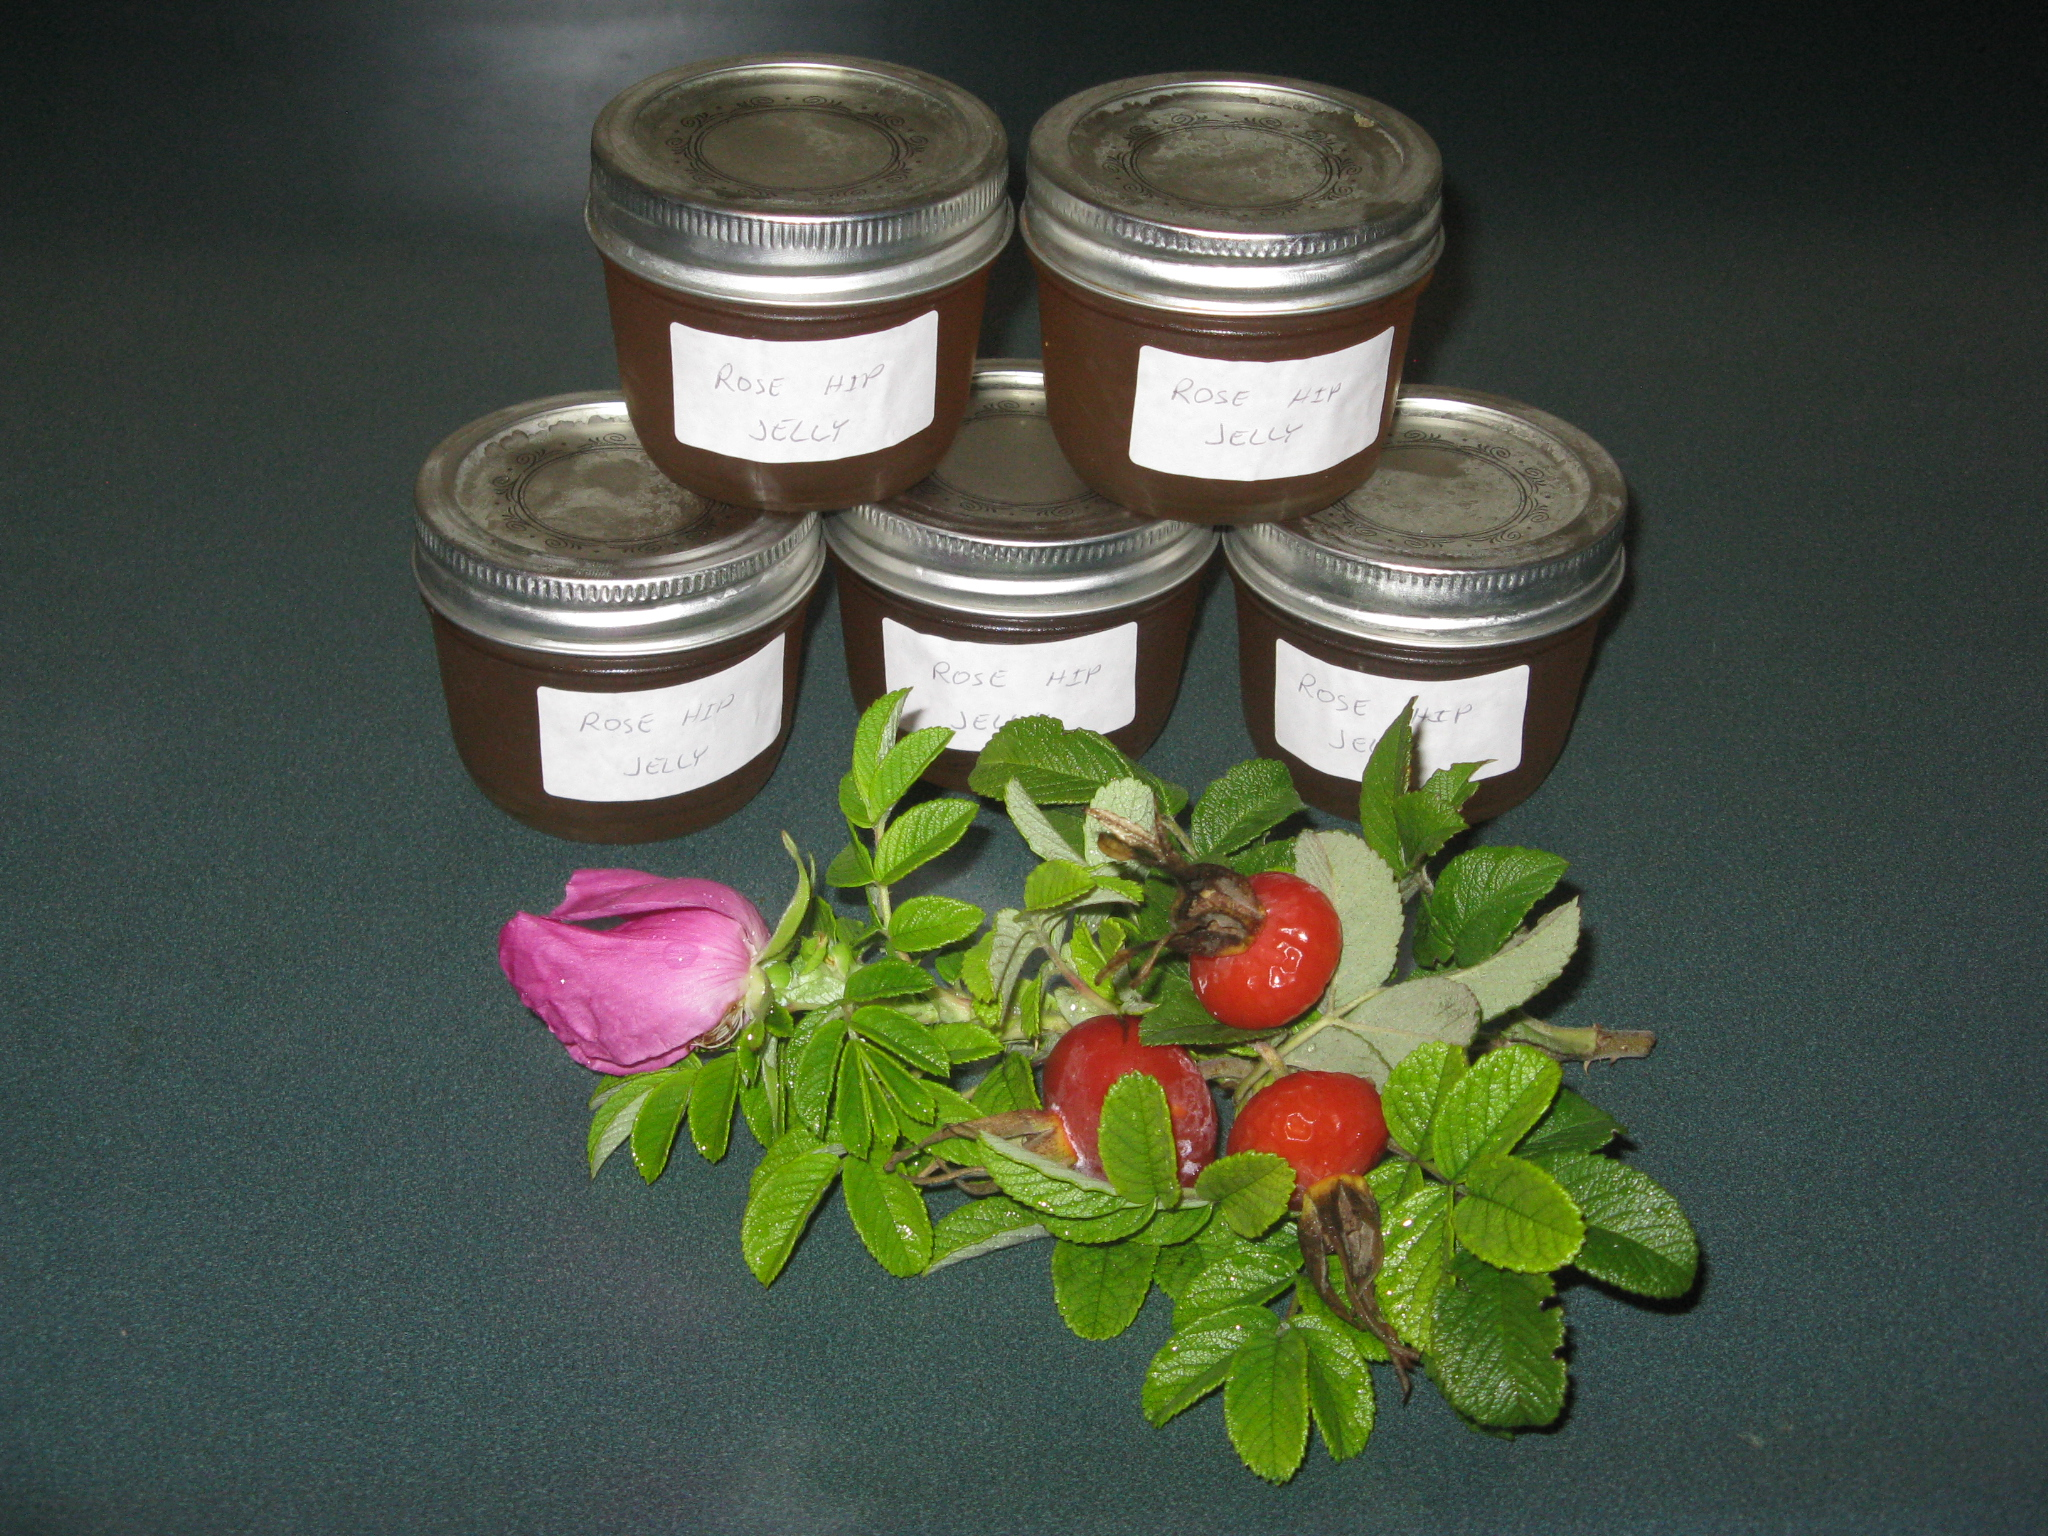 Picture of Sugar Free Rose Hip Jelly